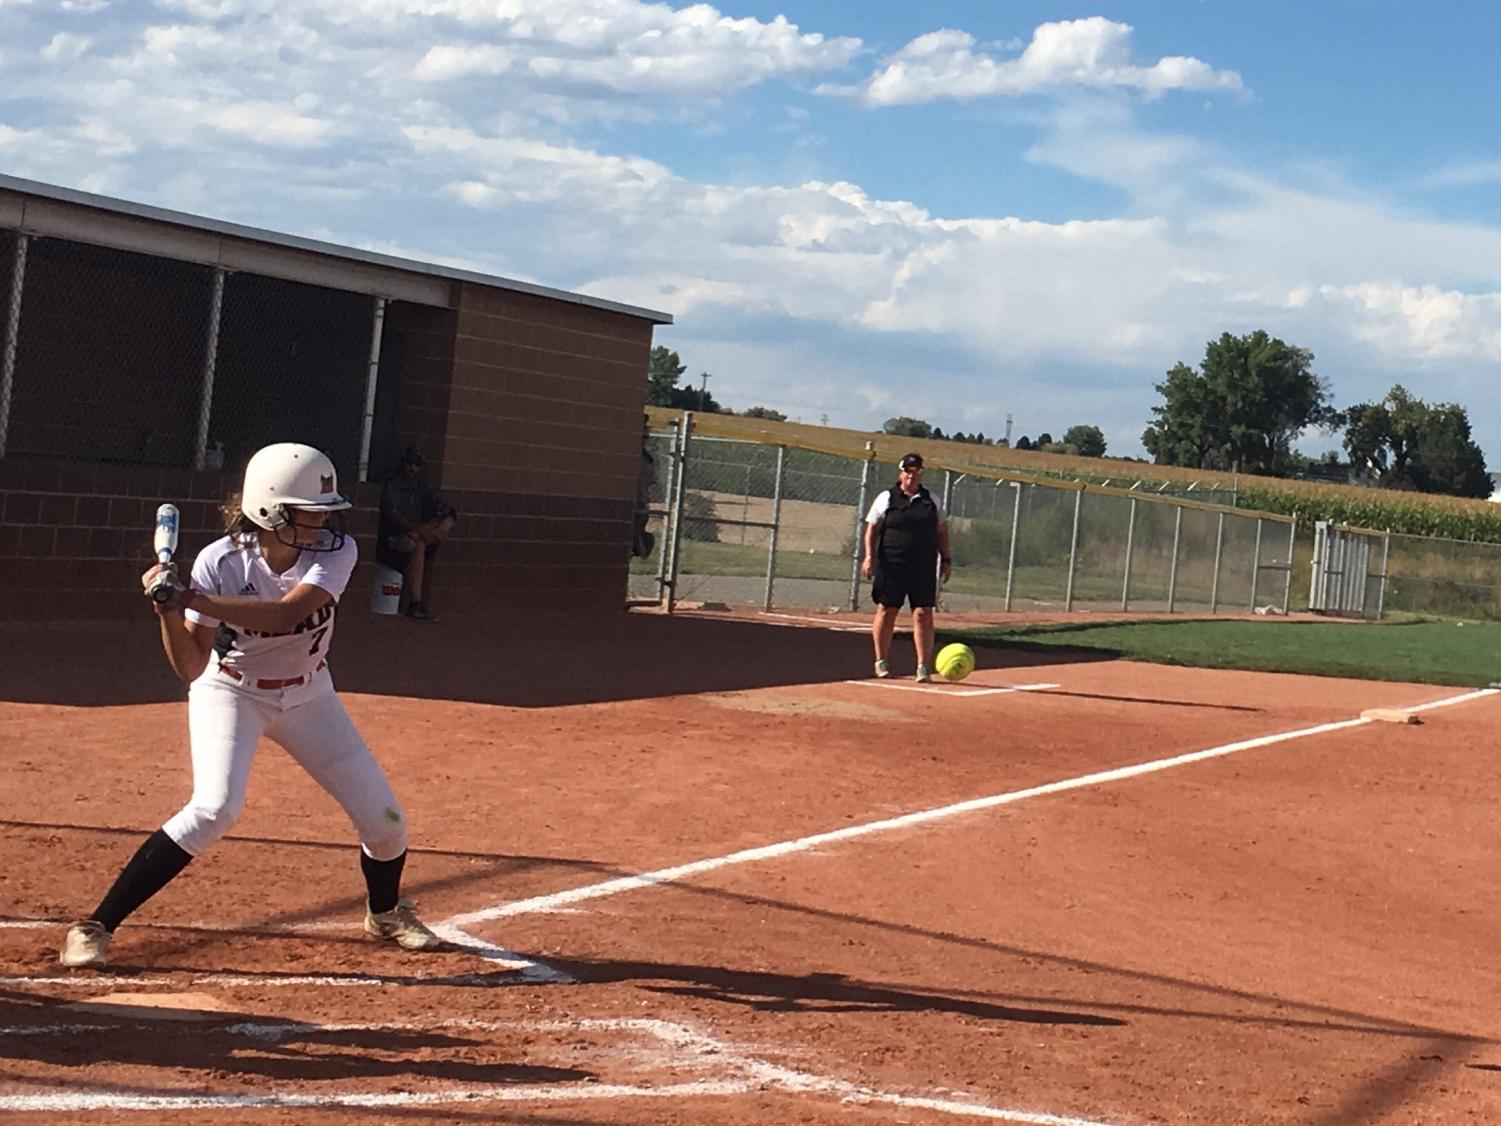 Freshman Maddox Boston (#7) prepares to swing as the ball is pitched at the softball game against Windsor on September 11.